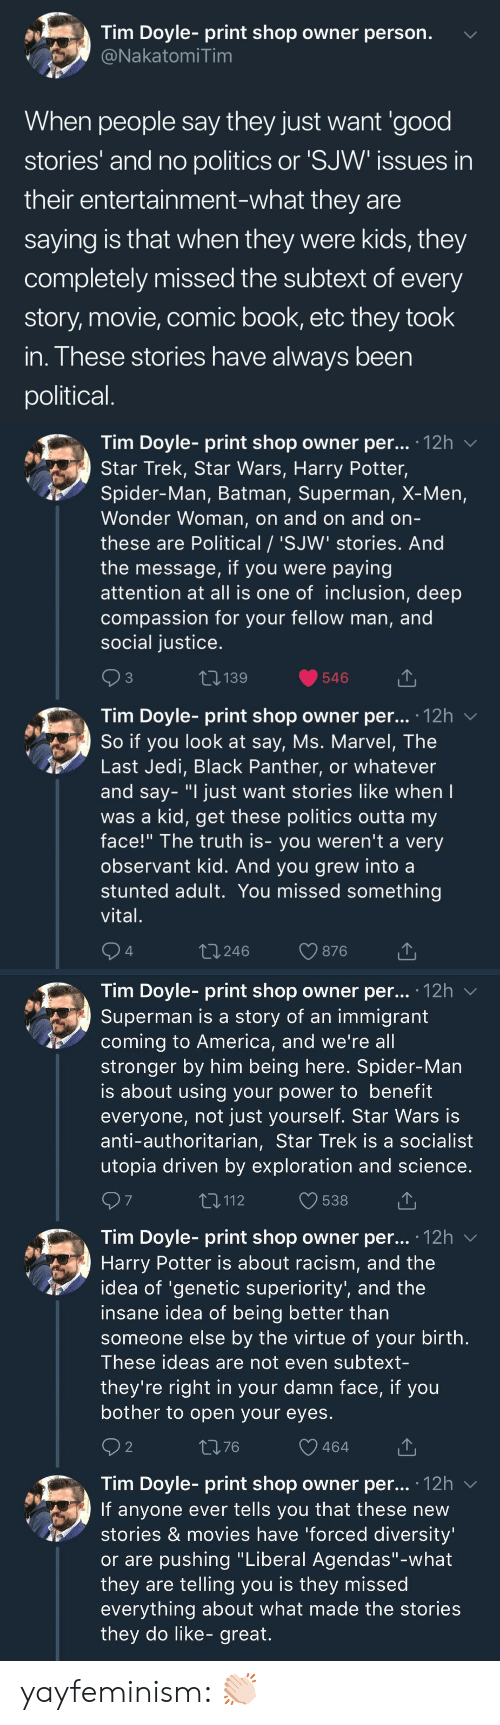 """exploration: Tim Doyle- print shop owner person.  NakatomiTim  When people say they just want 'good  stories' and no politics or 'SJW issues in  their entertainment-what they are  saying is that when they were kids, they  completely missed the subtext of every  story, movie, comic book, etc they took  in. These stories have always been  political   Tim Doyle- print shop owner per... 12h v  Star Trek, Star Wars, Harry Potter,  Spider-Man, Batman, Superman, X-Men,  Wonder Woman, on and on and orn  these are Political / 'SJW' stories. And  the message, if you were paying  attention at all is one of inclusion, deep  compassion for your fellow man, and  social justice  3  139  546  Tim Dovle-print shop owner per... 12h  So if you look at say, Ms. Marvel, The  Last Jedi, Black Panther, or whatever  and say- """"I just want stories like when  was a kid, get these politics outta my  face!"""" The truth is- you weren't a very  observant kid. And you grew into a  stunted adult. You missed something  vital  4  t 246  876   Tim Doyle- print shop owner per... '12h v  Superman is a story of an immigrant  coming to America, and we're all  stronger by him being here. Spider-Man  is about using your power to benefit  everyone, not just yourself. Star Wars is  anti-authoritarian, Star Trek is a socialist  utopia driven by exploration and science  7  T,112  538  Tim Doyle- print shop owner per... .12h  Harry Potter is about racism, and the  idea of 'genetic superiority', and the  insane idea of being better than  someone else by the virtue of your birth  These ideas are not even subtext-  they're right in your damn face, if you  bother to open your eyes  2  1376  464  Tim Doyle- print shop owner per... 12h v  If anyone ever tells you that these new  stories & movies have 'forced diversity  or are pushing """"Liberal Agendas""""-what  they are telling you is they missed  everything about what made the stories  they do like- great. yayfeminism: 👏🏻"""